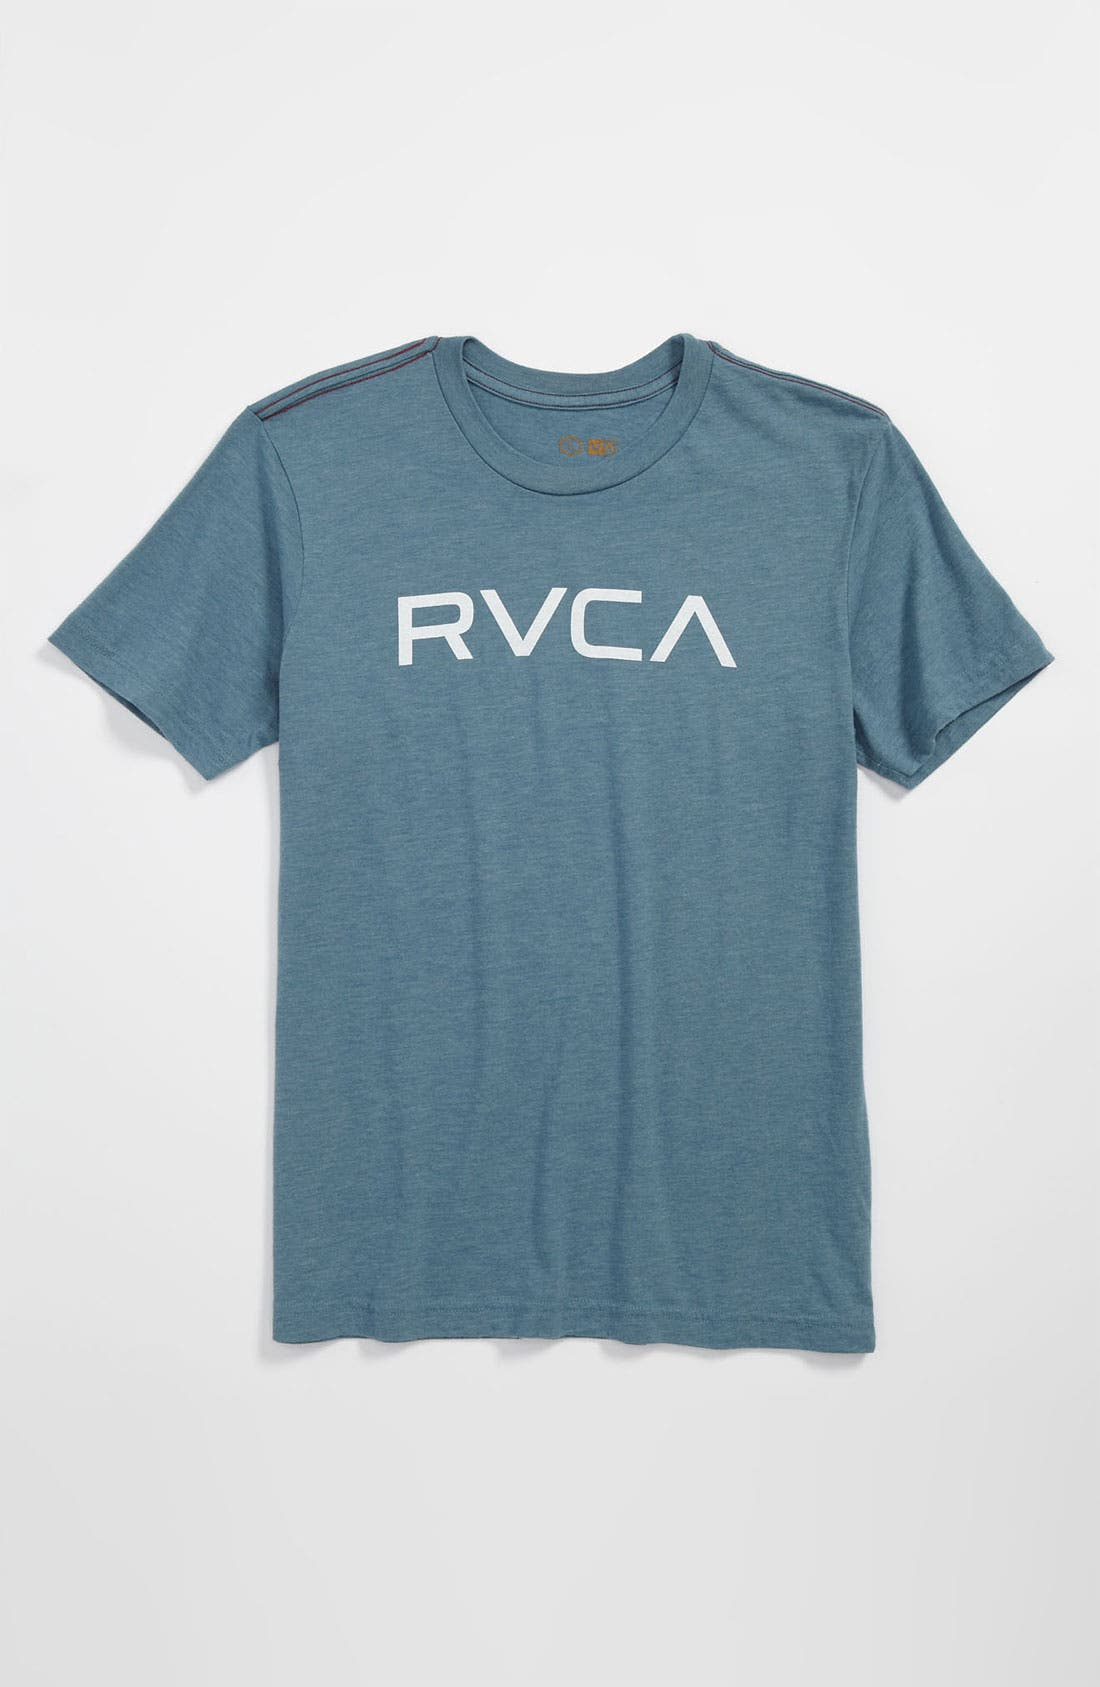 Main Image - RVCA 'Big' Graphic T-Shirt (Big Boys)